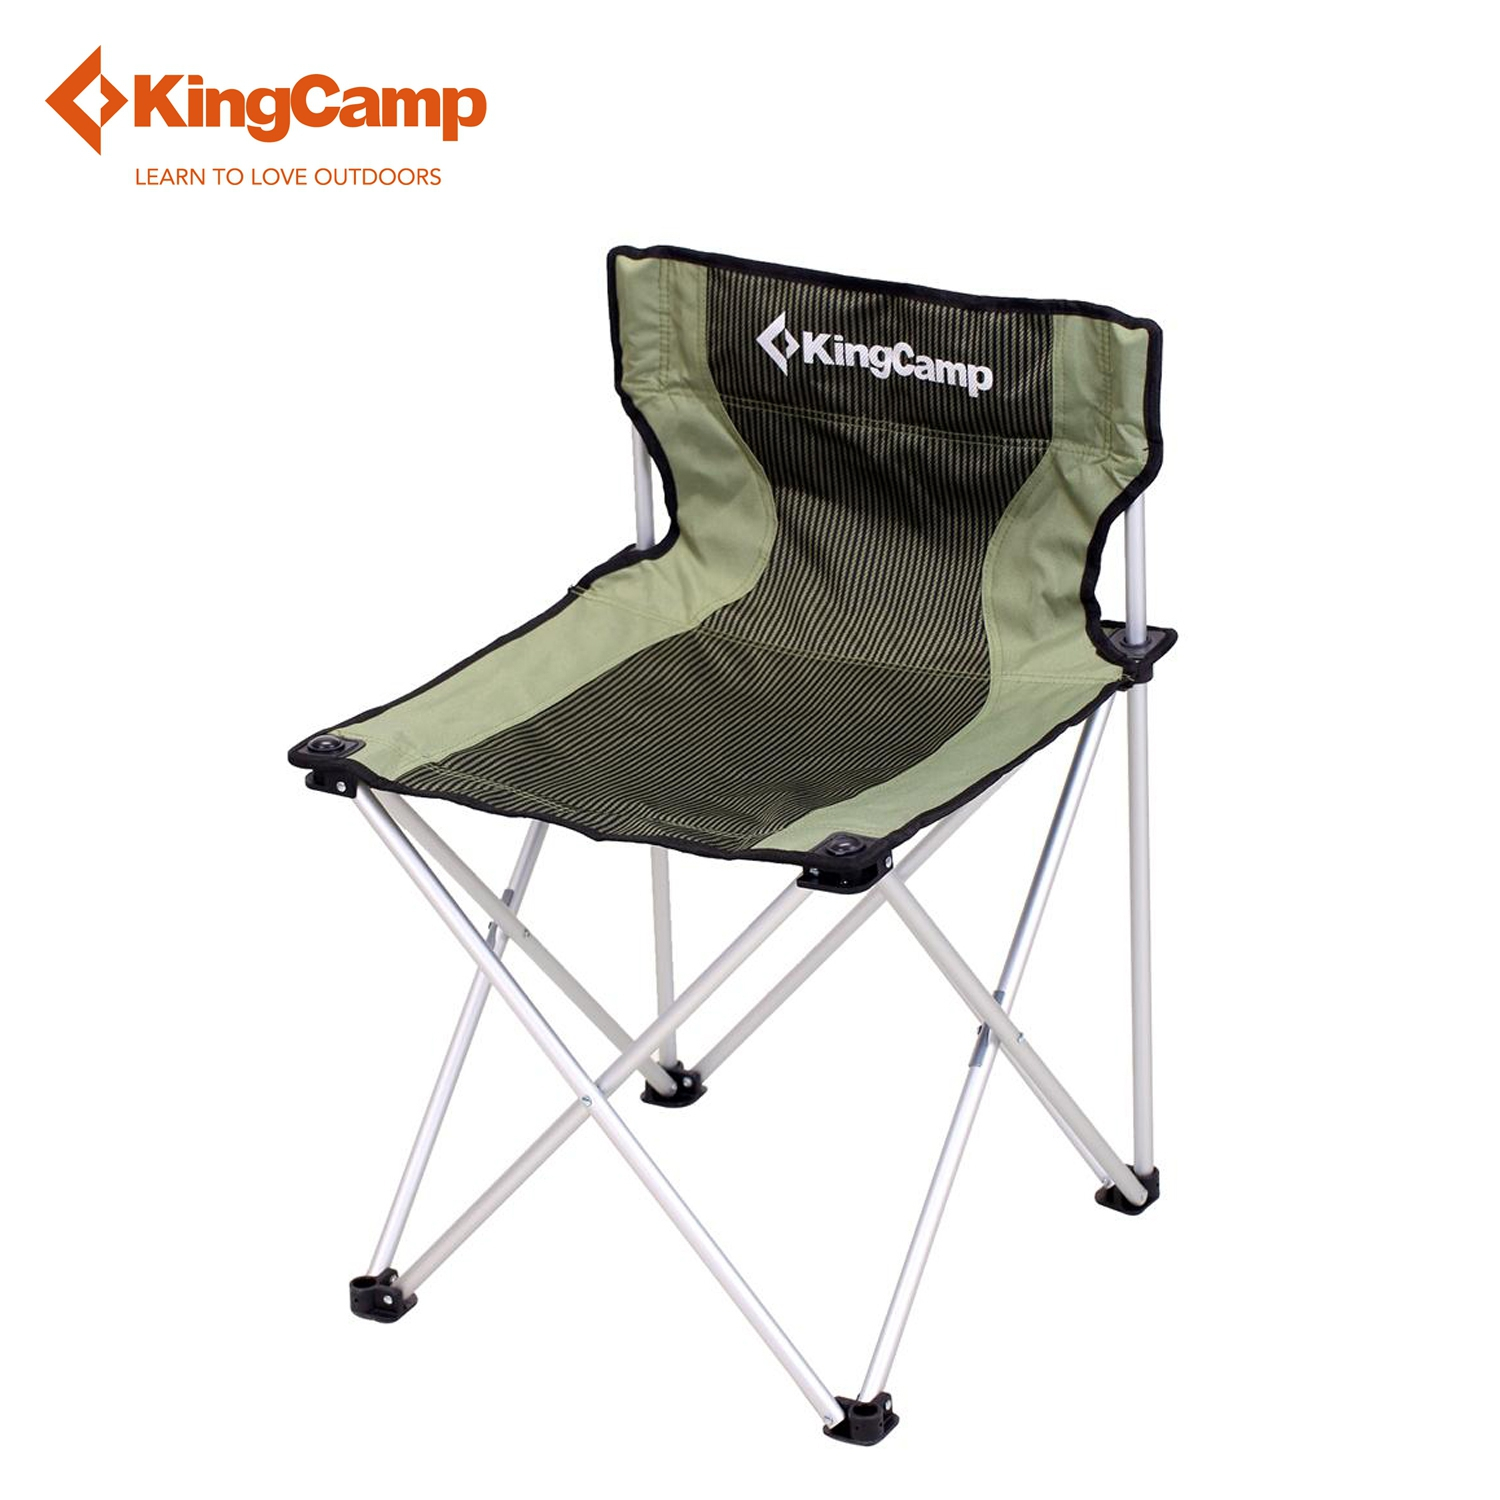 Fishing Chair Small Kmart Bean Bag Chairs Australia Folding Perfect Traveler